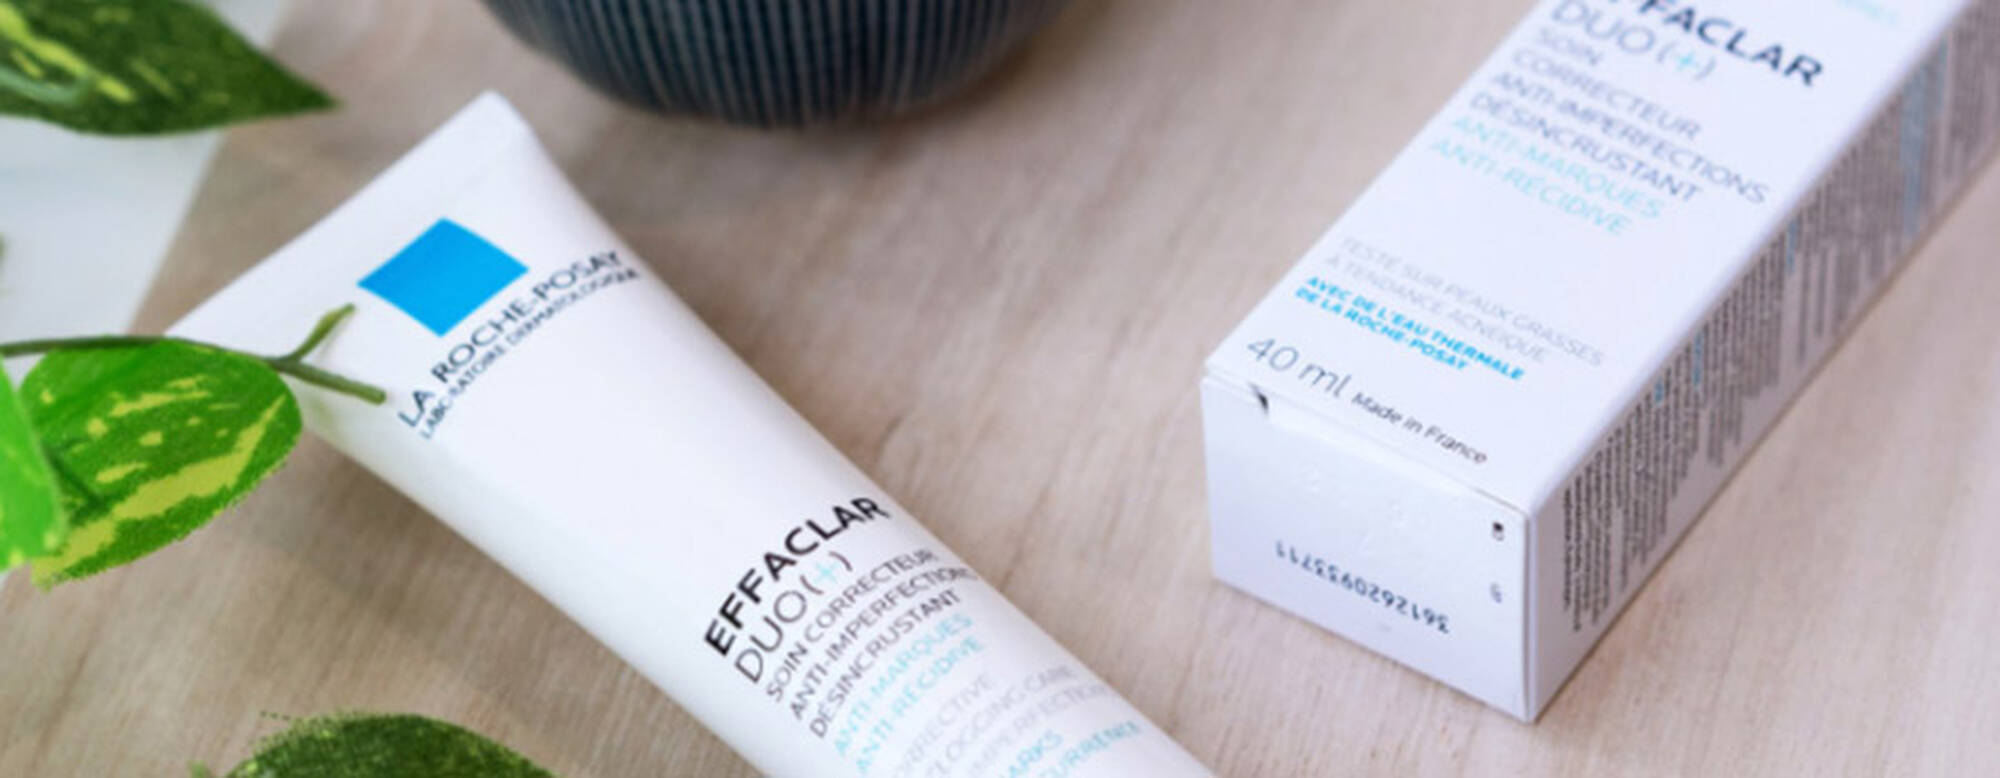 OUR DAY-TO-DAY CLEANSER AND MOISTURISER SELECTION FOR THOSE WITH ACNE-PRONE SKIN